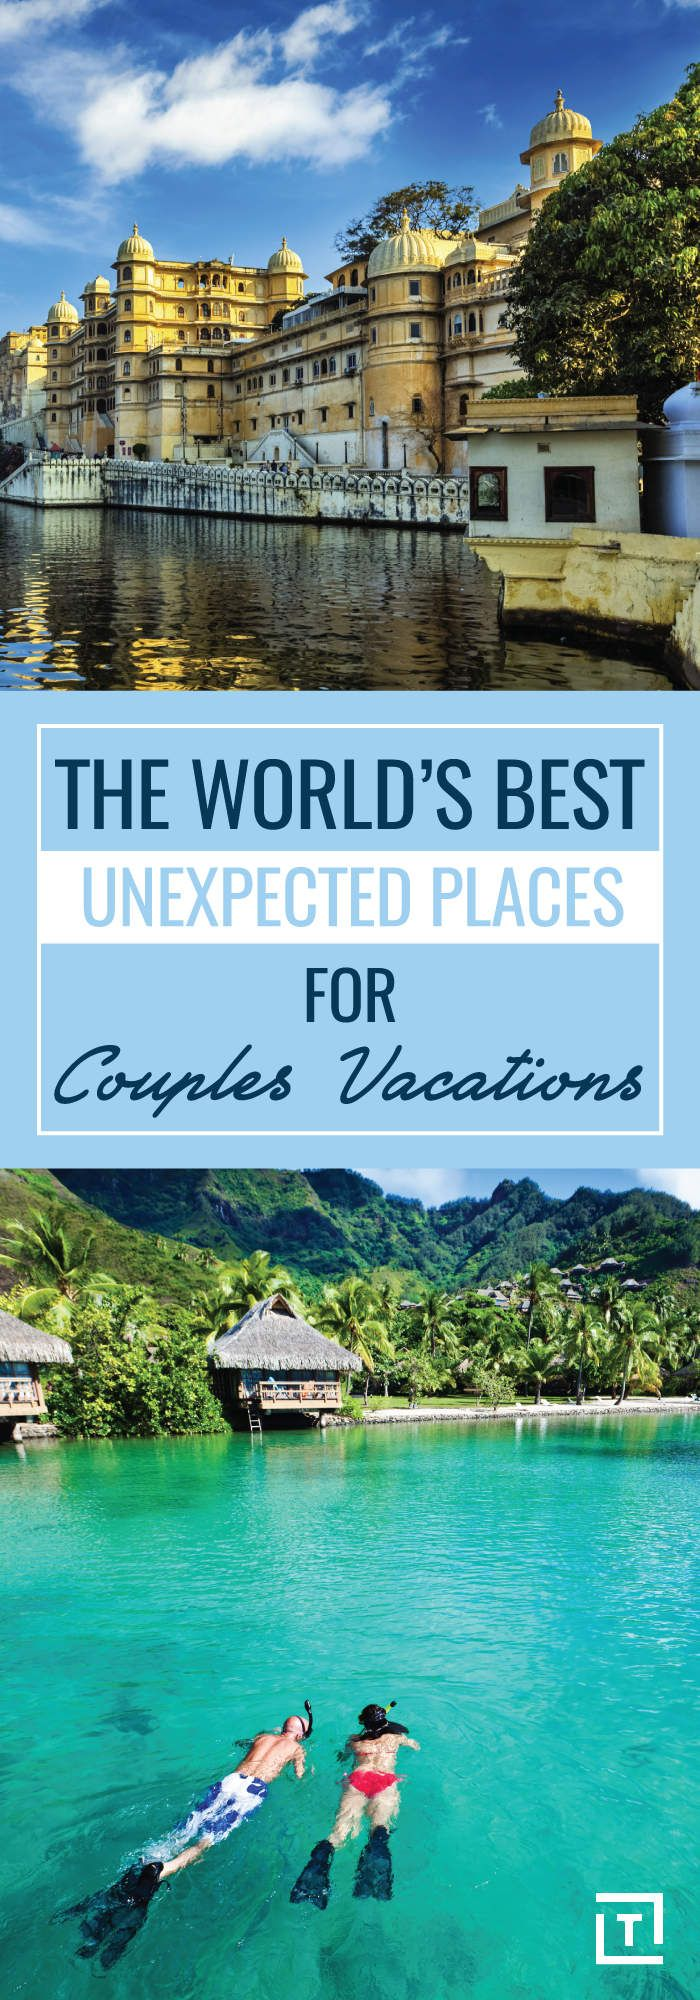 The World S Best Unexpected Places For Vacations